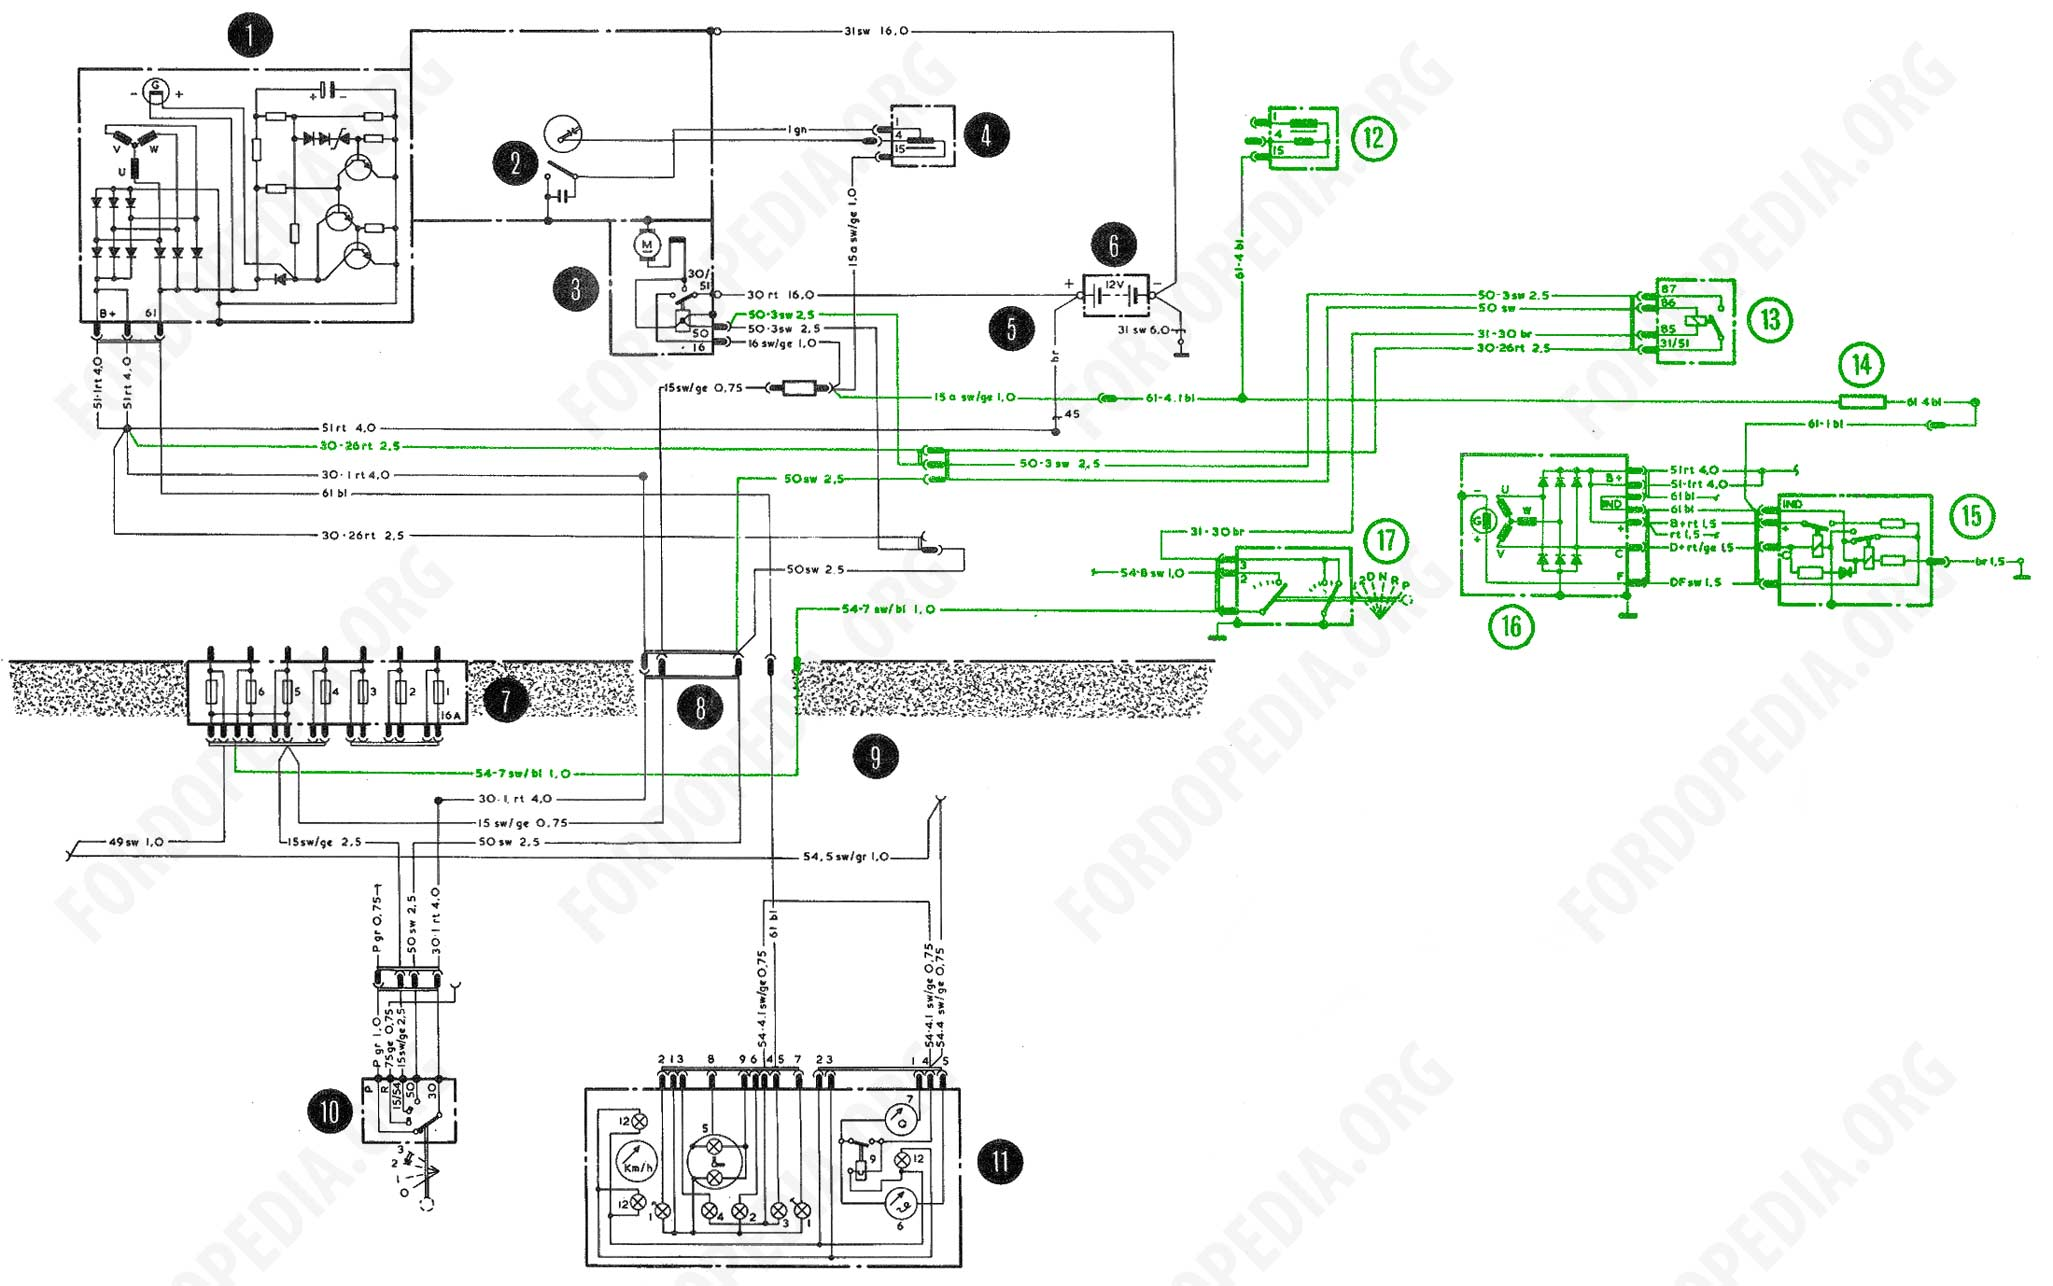 Basic Starter Wiring Diagram List Of Schematic Circuit 1969 Charger Fordopedia Org Rh Simple Motor